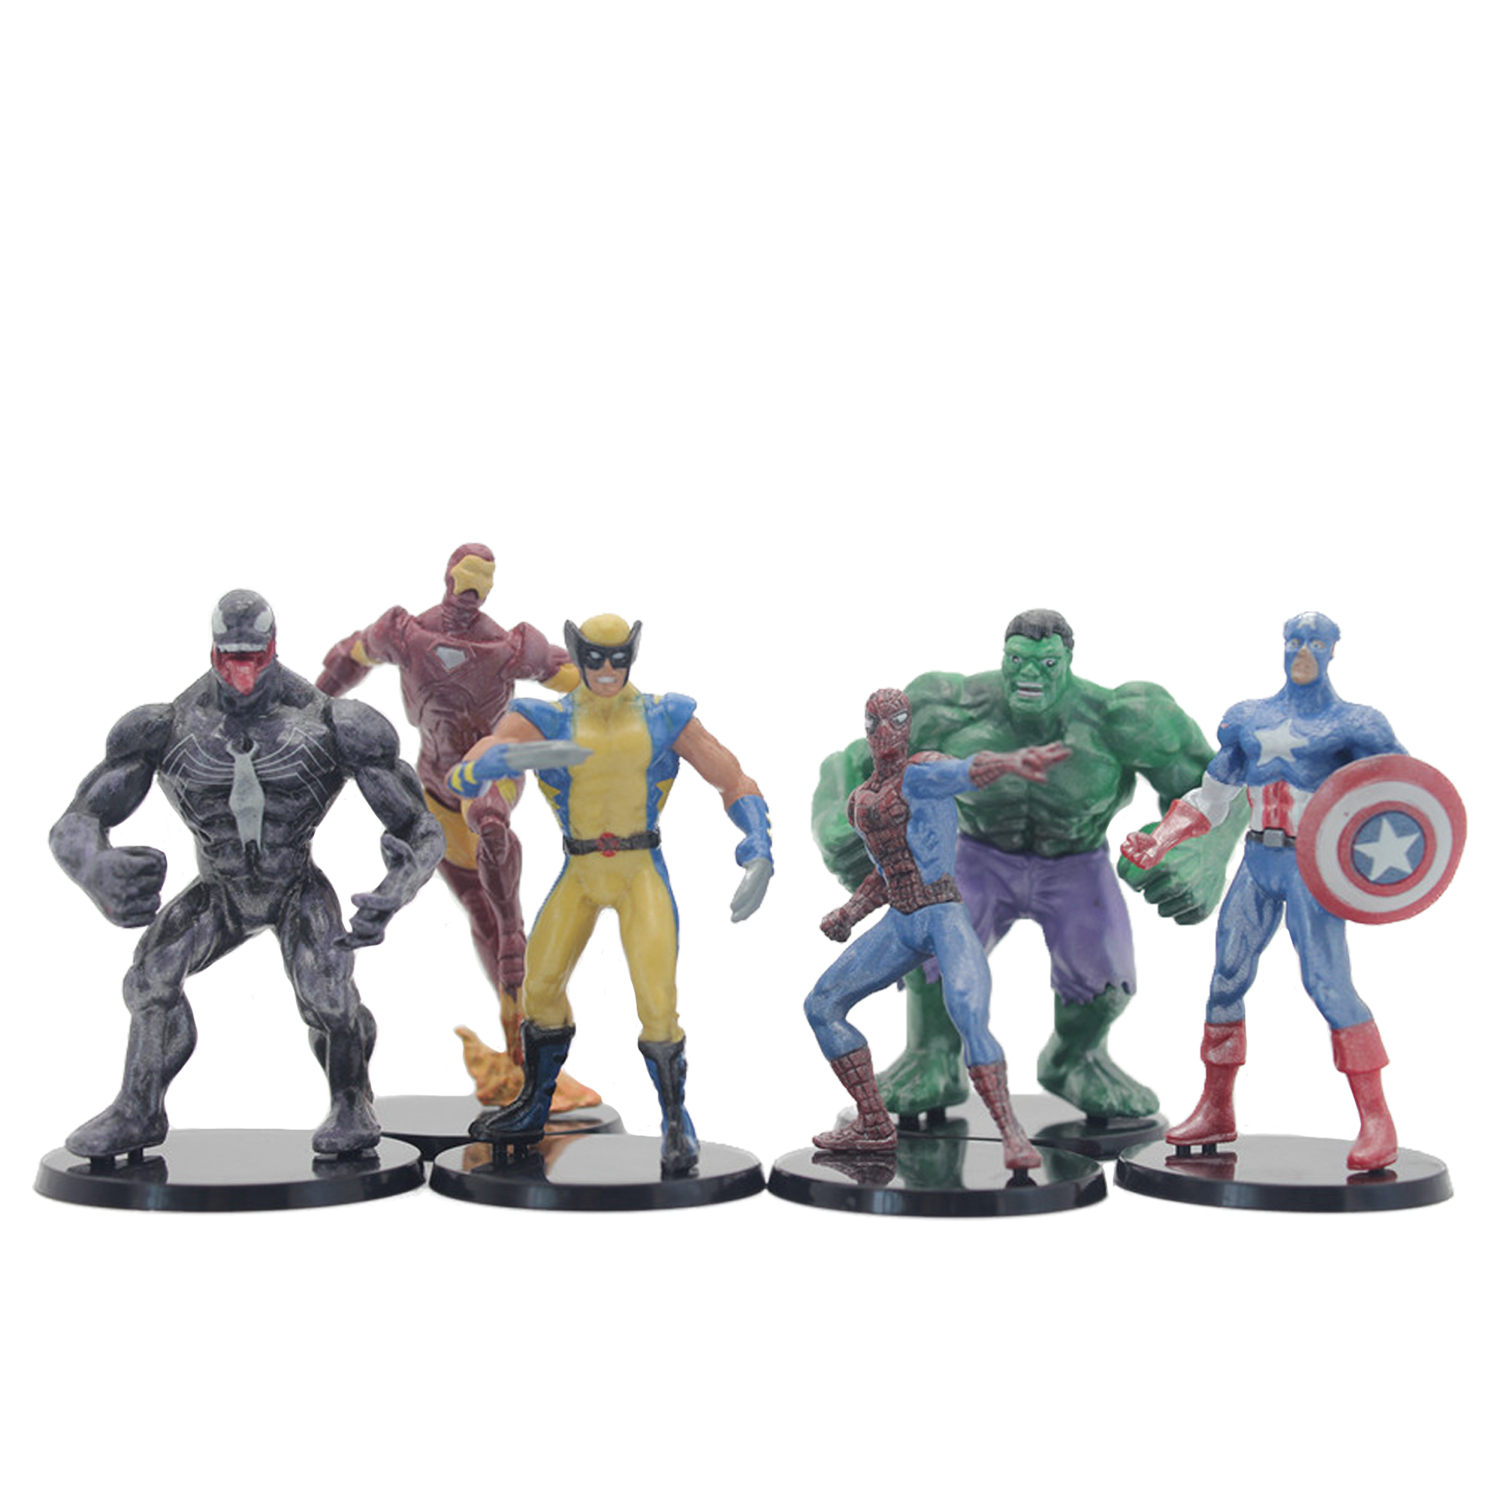 OPP Big Sale Now 6PCS/Lot Marvel Avengers Civil War Captain America 3 Iron Man Hulk Spiderman Doll 8cm PVC Action Figure Toys(China (Mainland))